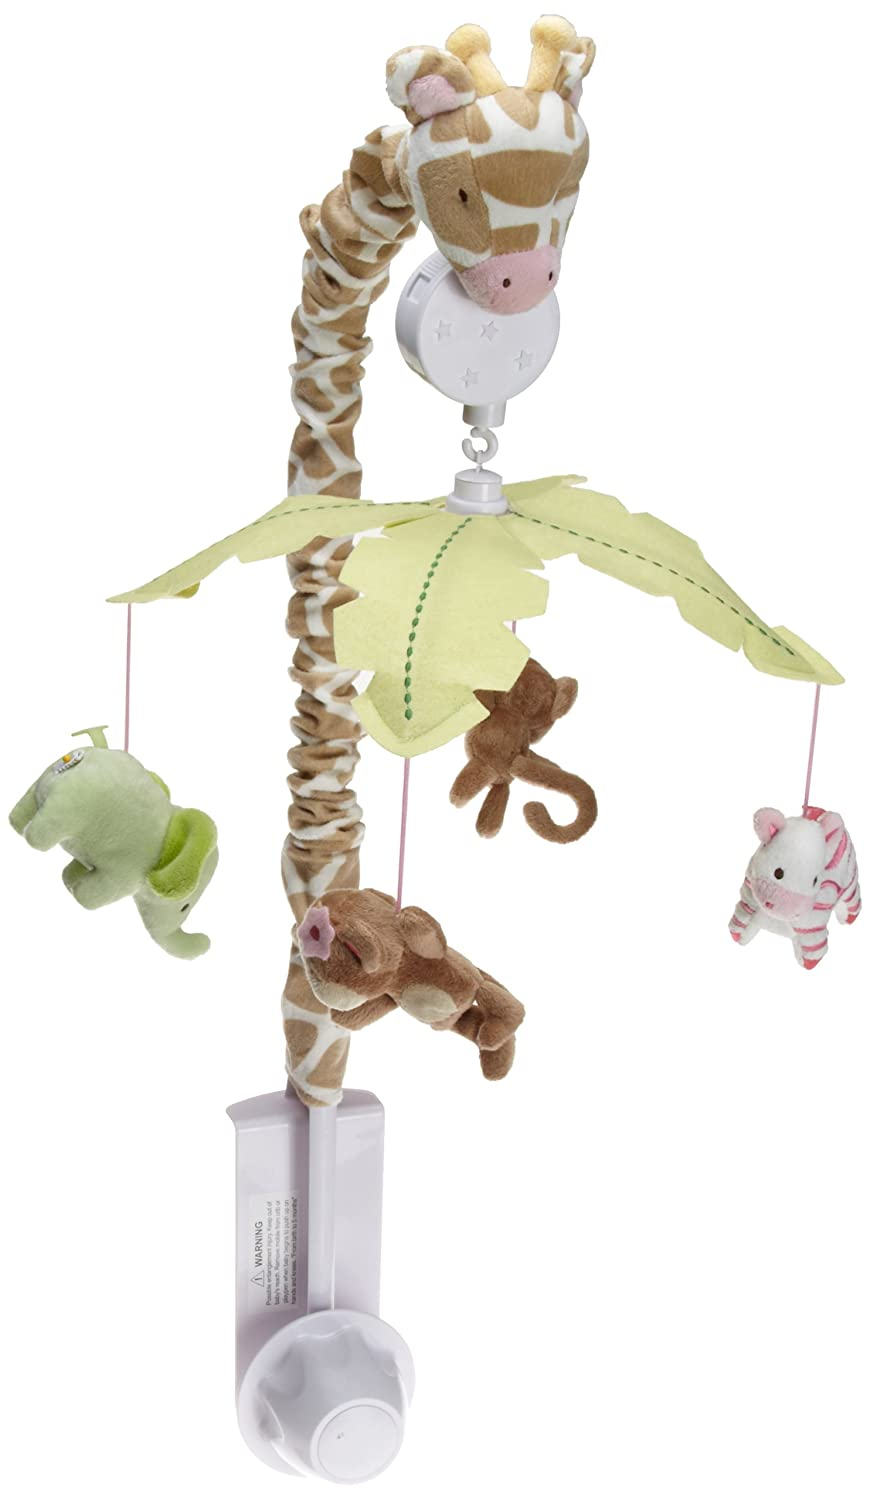 » Crib Bedding Sale Babykids Best Price @ Jungle Musical Mobile By By Carter's® Brands All Your Home Styles And Budgets Of Furniture, Lighting, Cookware, And More. Free Shipping on .